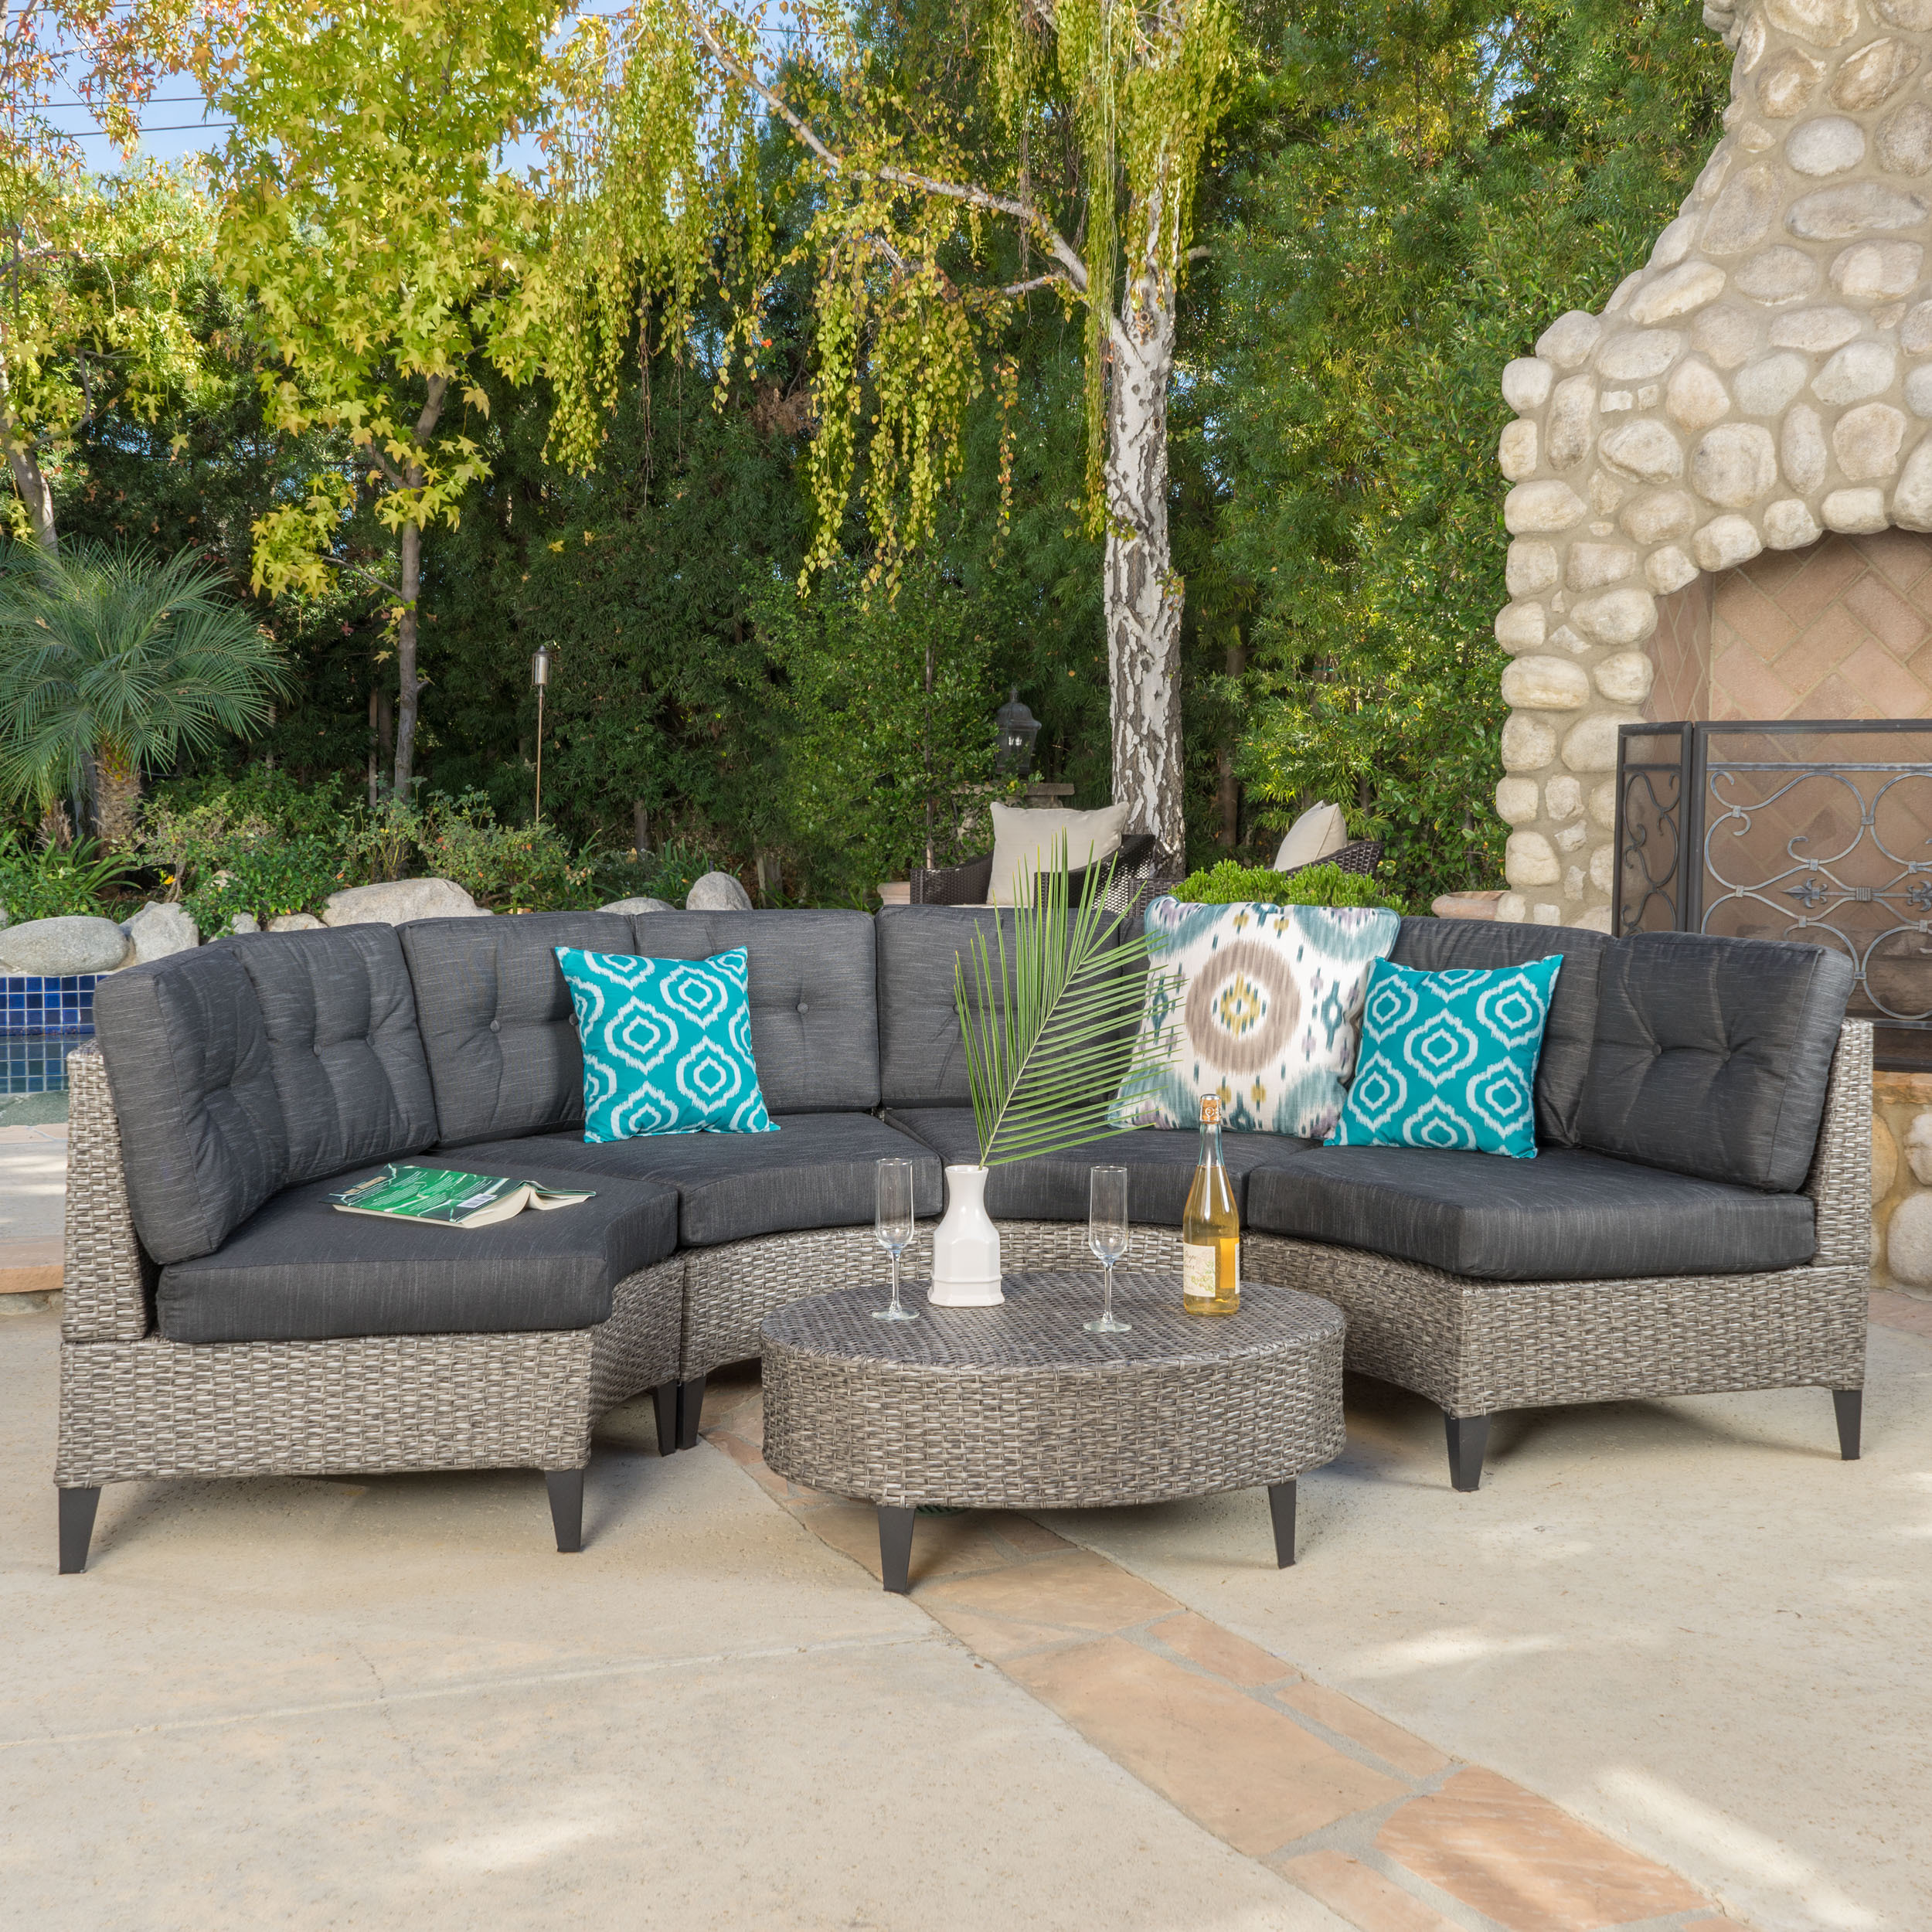 Navagio Outdoor 5 Piece Wicker Sofa Set With Cushions By Christopher Knight Home On Free Shipping Today 13621643